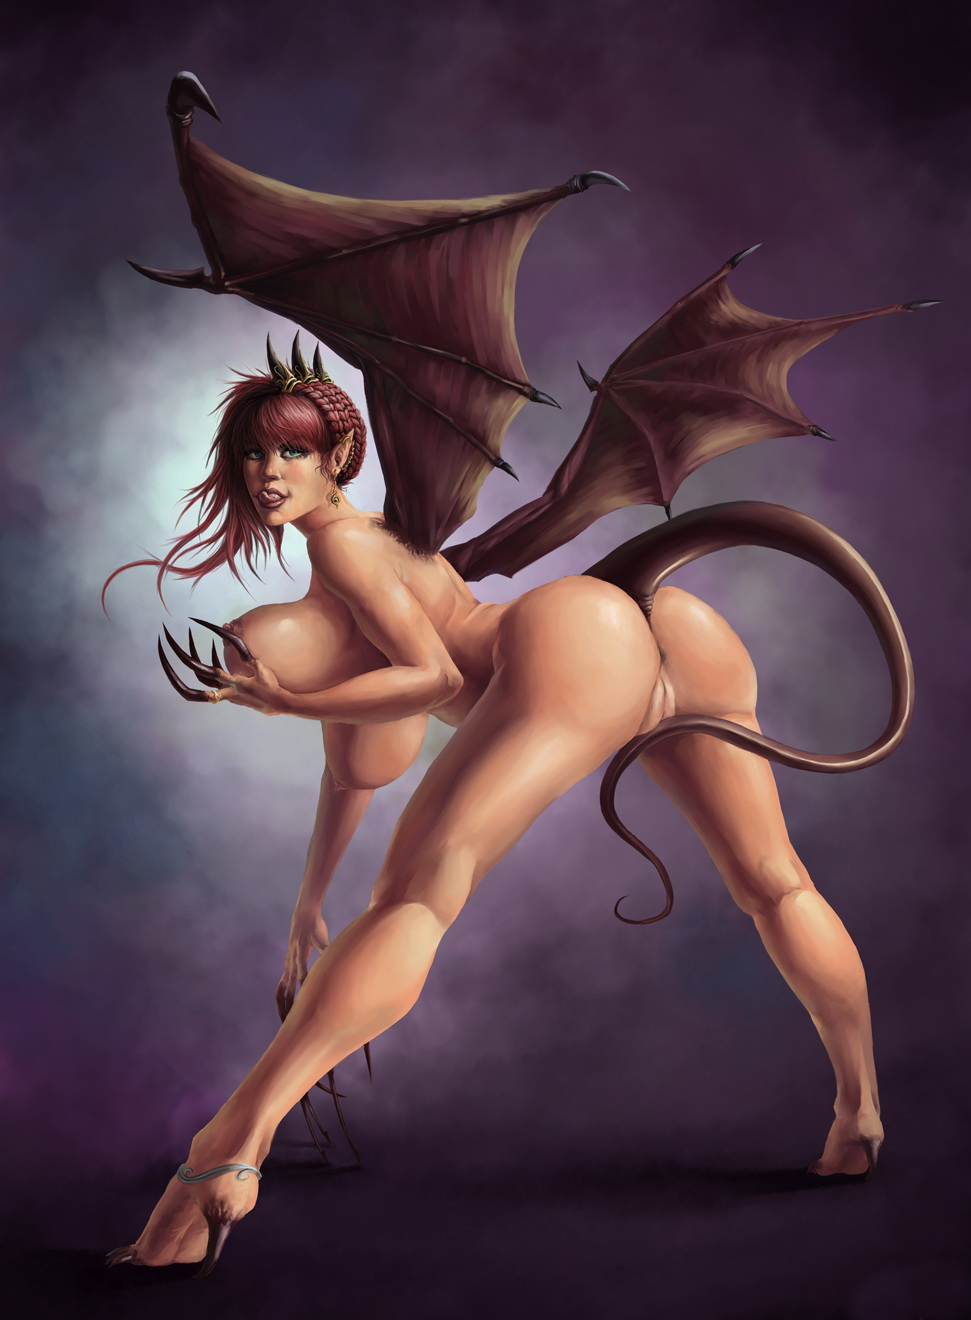 Erotic demoness pic nsfw tube